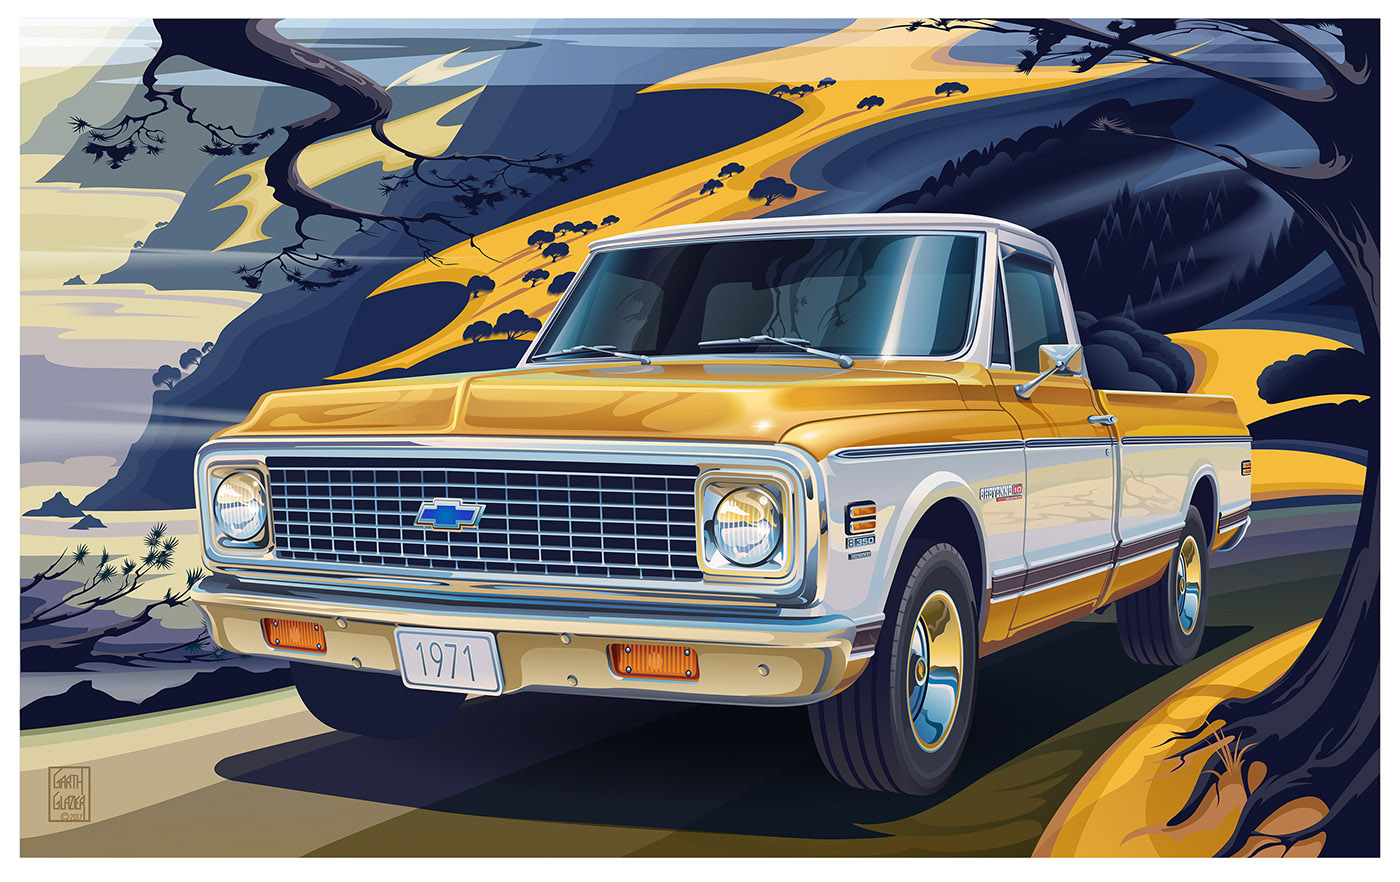 c10 chevrolet 1971 poster truck fleetside pickup chevy 100 anniversary posters cheyenne 2wd garth glazier trucks digital prints series artwork